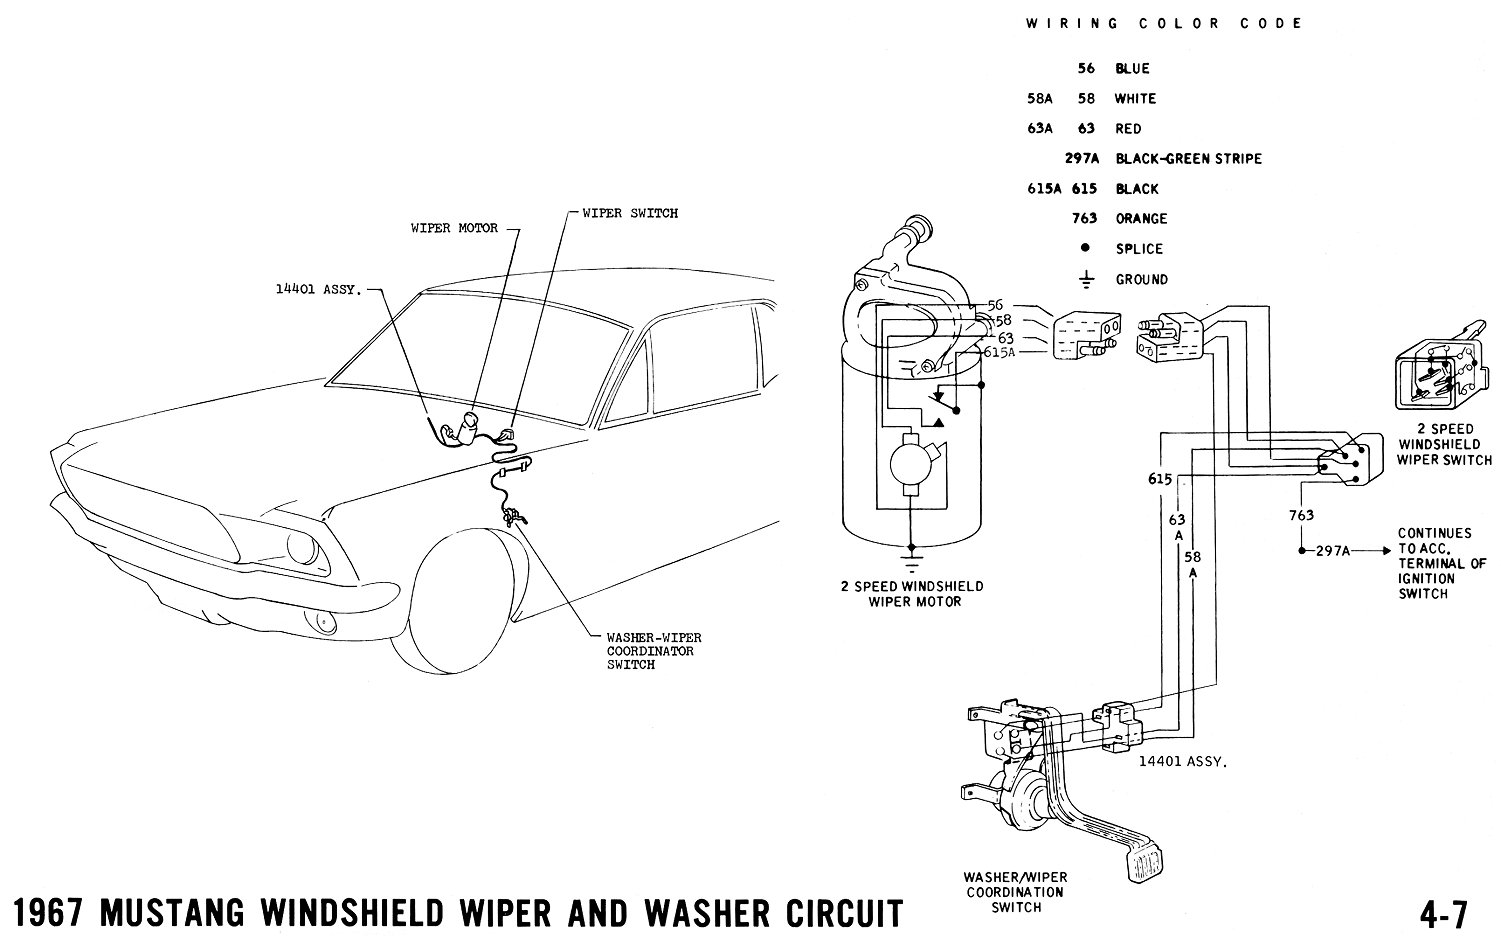 68 camaro wiring schematic with 1967 Mustang Wiring And Vacuum Diagrams on Diagram moreover 67wir2 besides 1969 Cougar Wiring Diagram in addition 3817977 Wiper Motor Wiring additionally 67 Chevy C10 Vacuum Diagram.